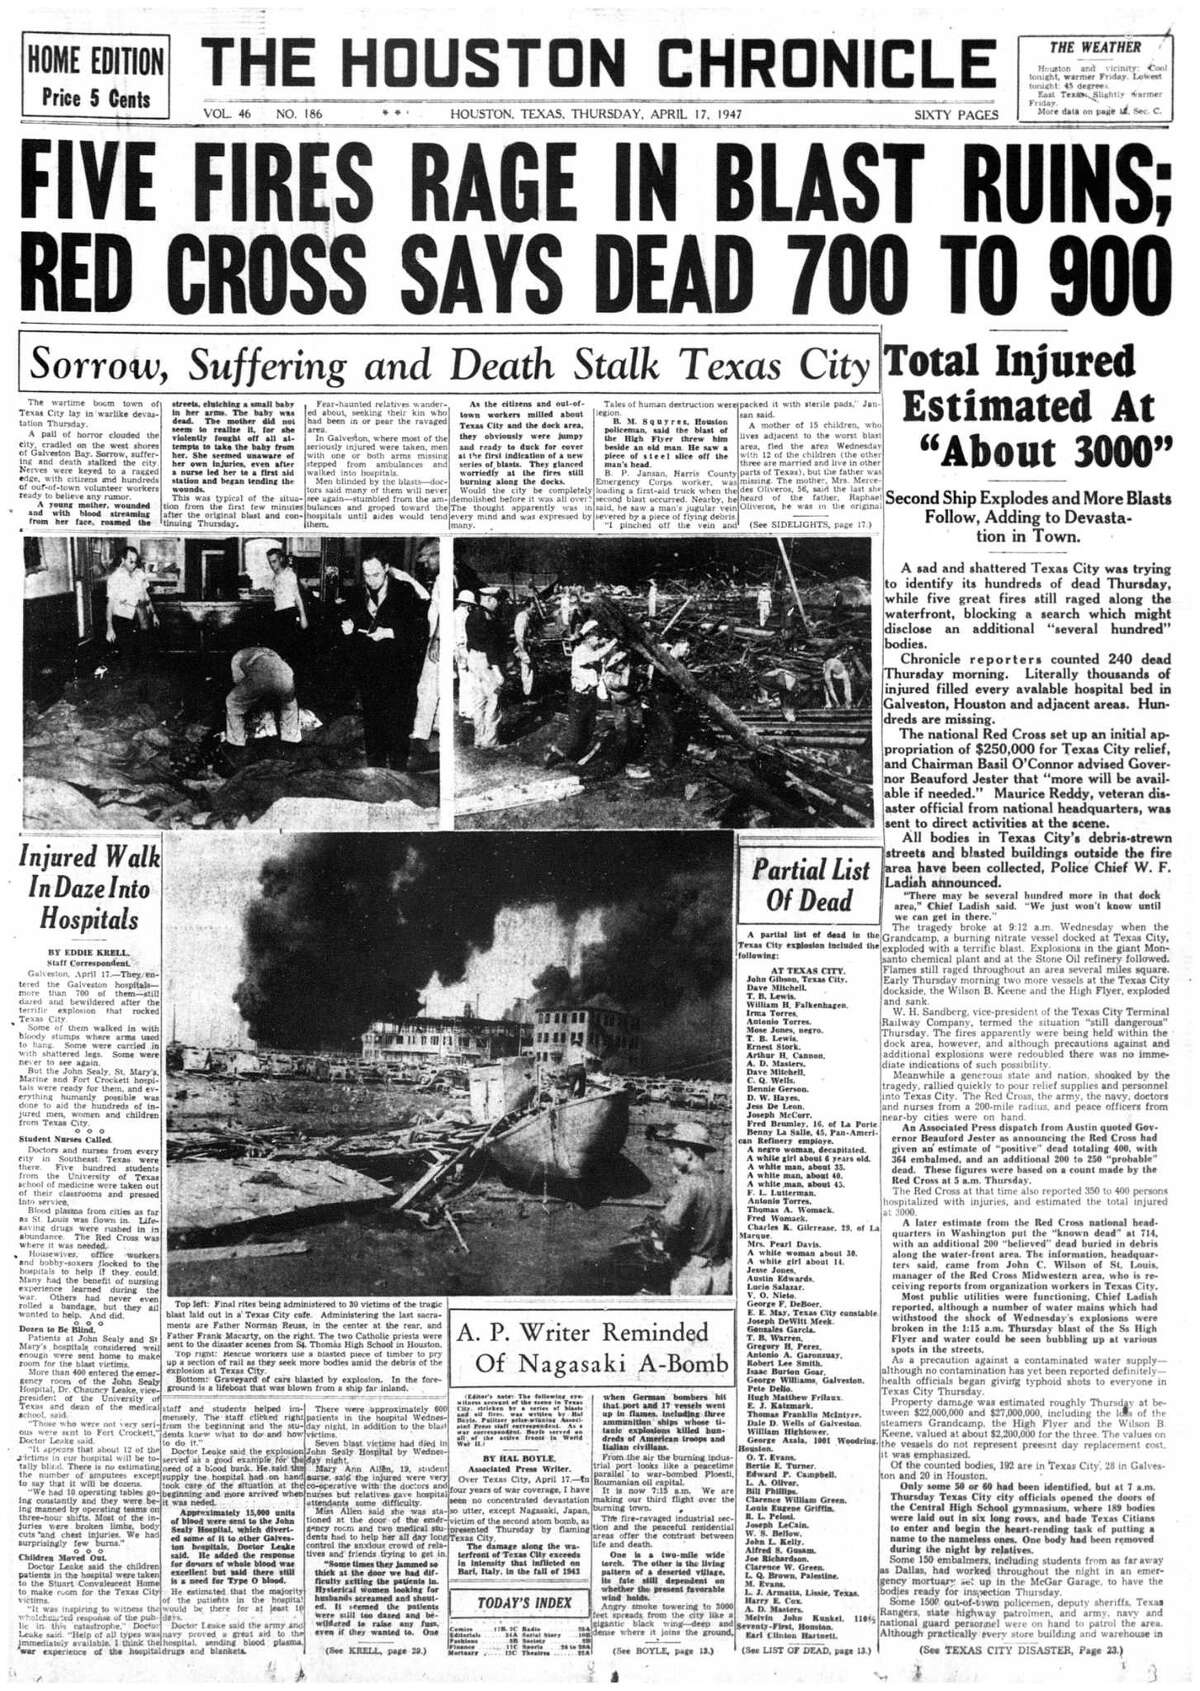 Houston Chronicle front page - April 17, 1947 - section A, page 1. (Texas City Disaster) FIVE FIRES RAGE IN BLAST RUINS; RED CROSS SAYS DEAD 700 TO 900.